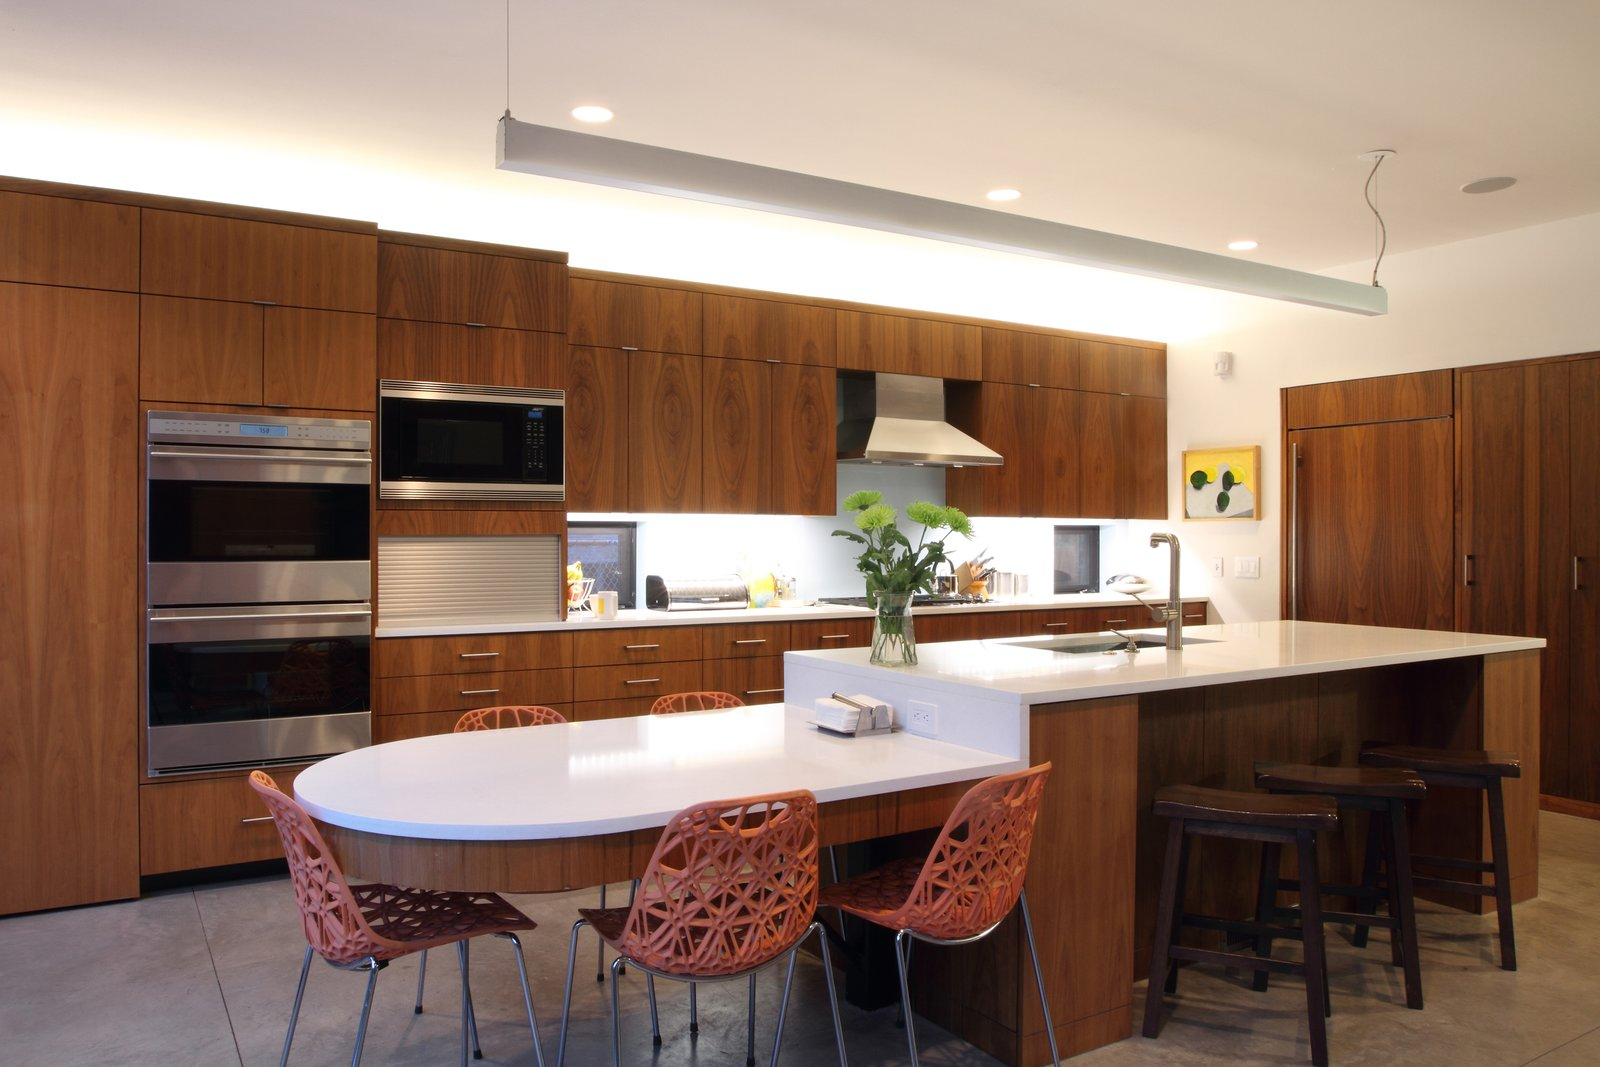 Kitchen, Engineered Quartz Counter, Wood Cabinet, Concrete Floor, Recessed Lighting, Pendant Lighting, Refrigerator, Glass Tile Backsplashe, Microwave, Wall Oven, Range Hood, Cooktops, and Undermount Sink Kitchen  Before House by David Benners Architecture